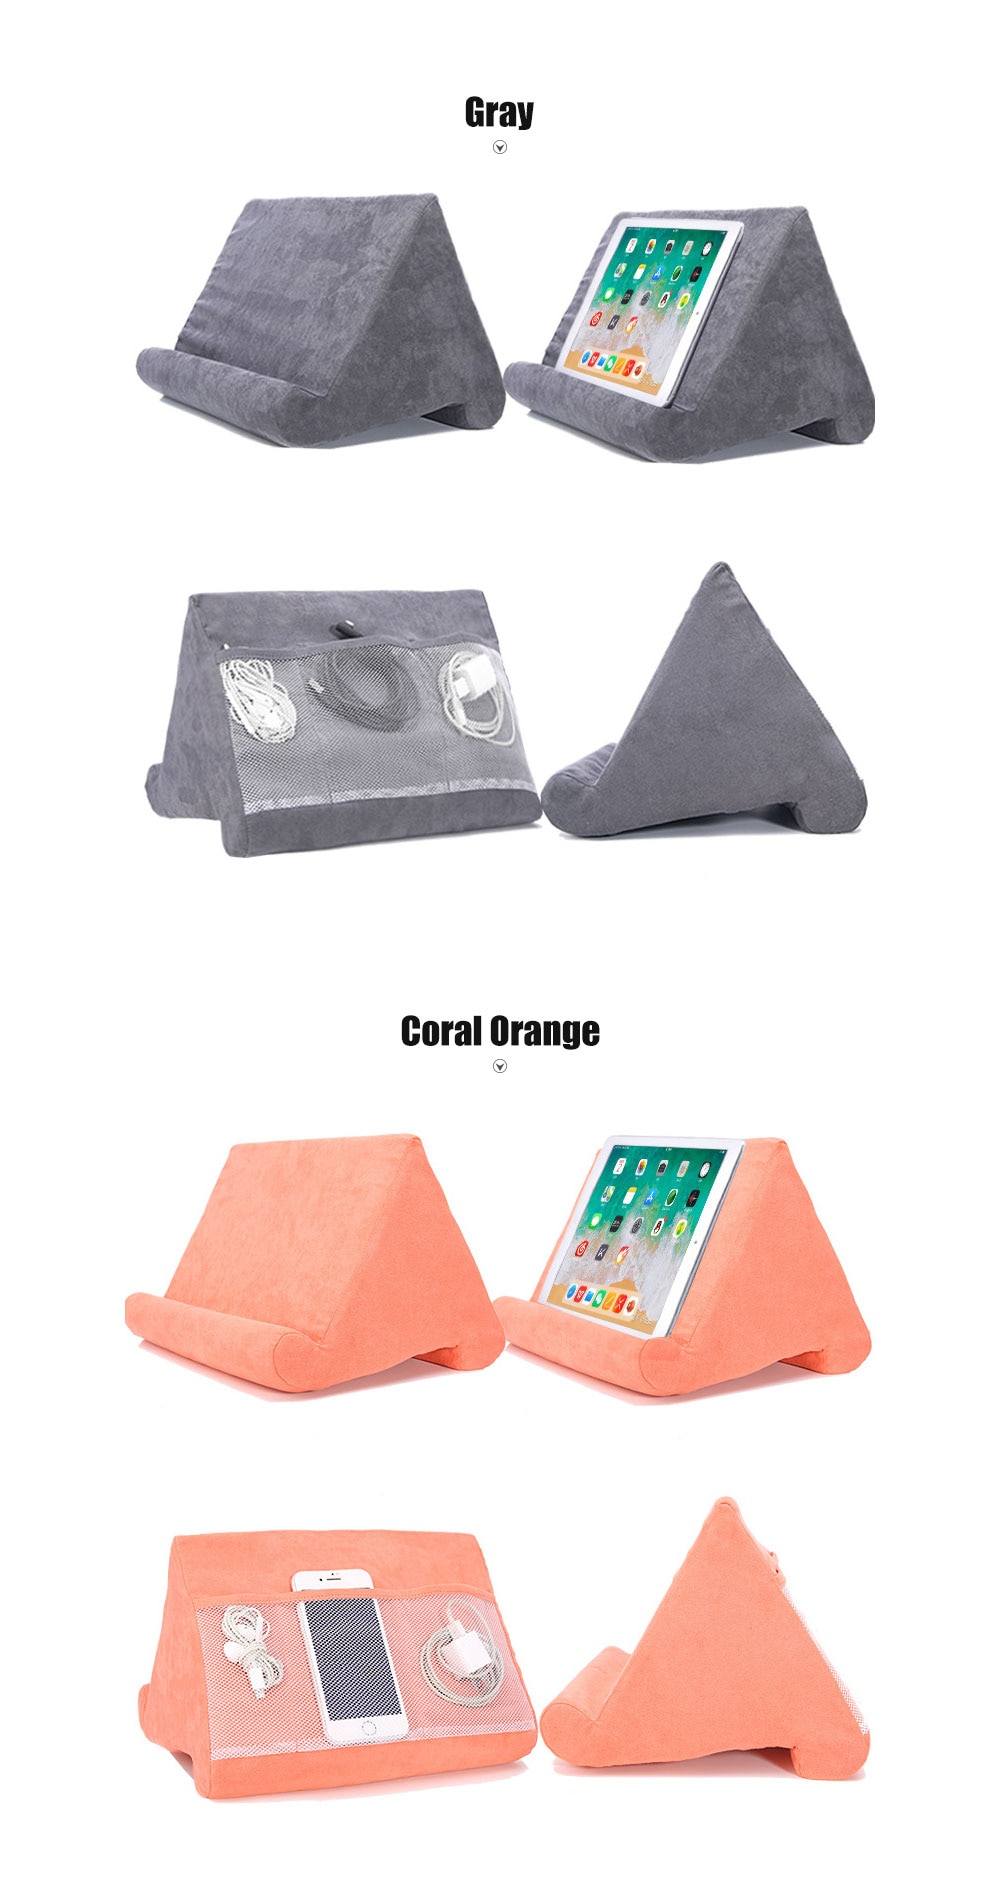 Sponge Pillow Tablet Stand Tablet Holder Phone Support Bed Rest Cushion Tablette Reading Holder For iPad Samsung Huawei Xiaomi